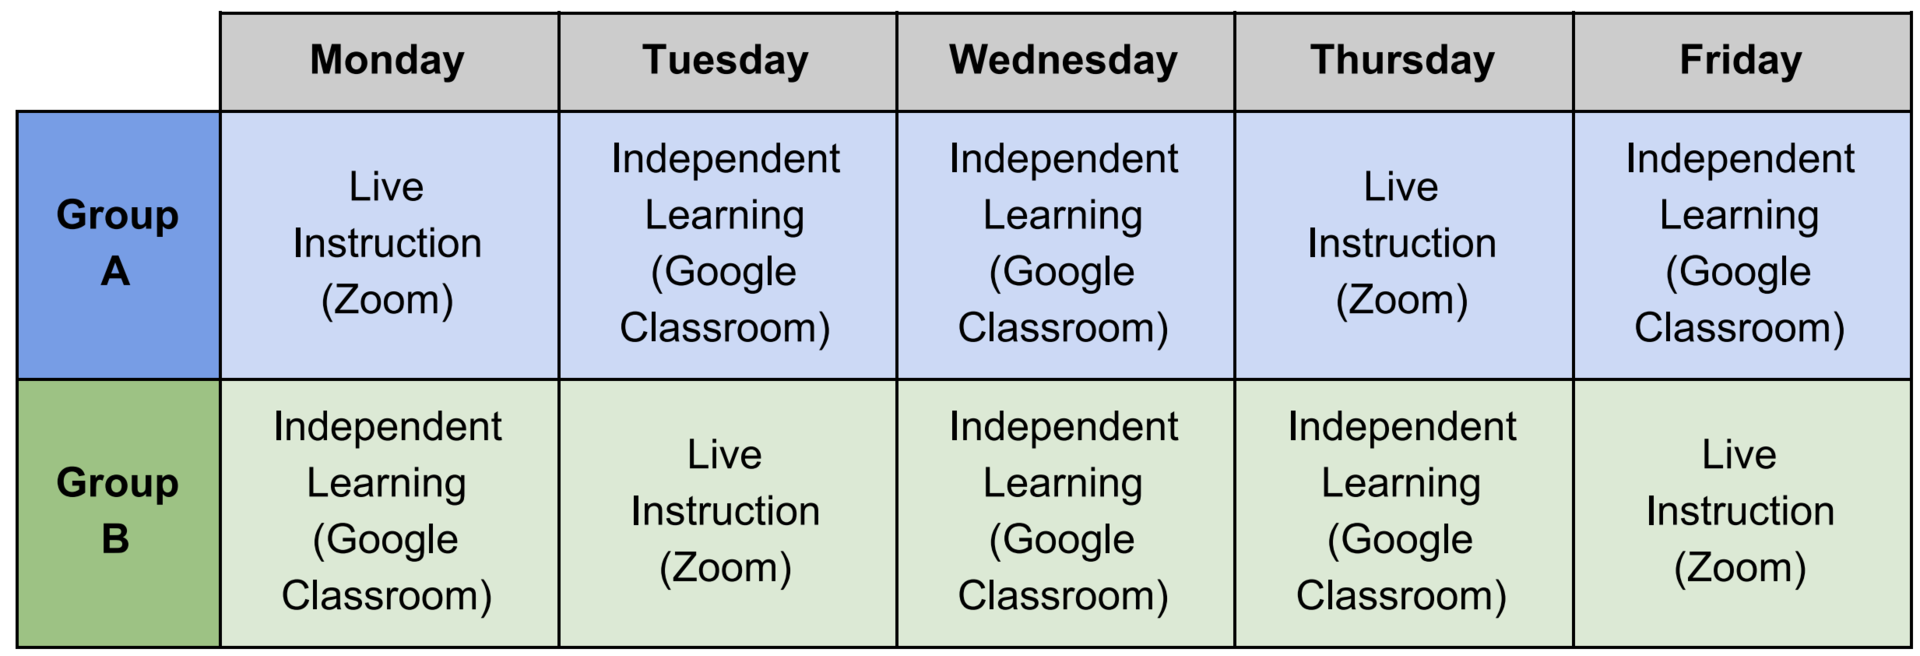 Full-Time Remote Learning Schedule